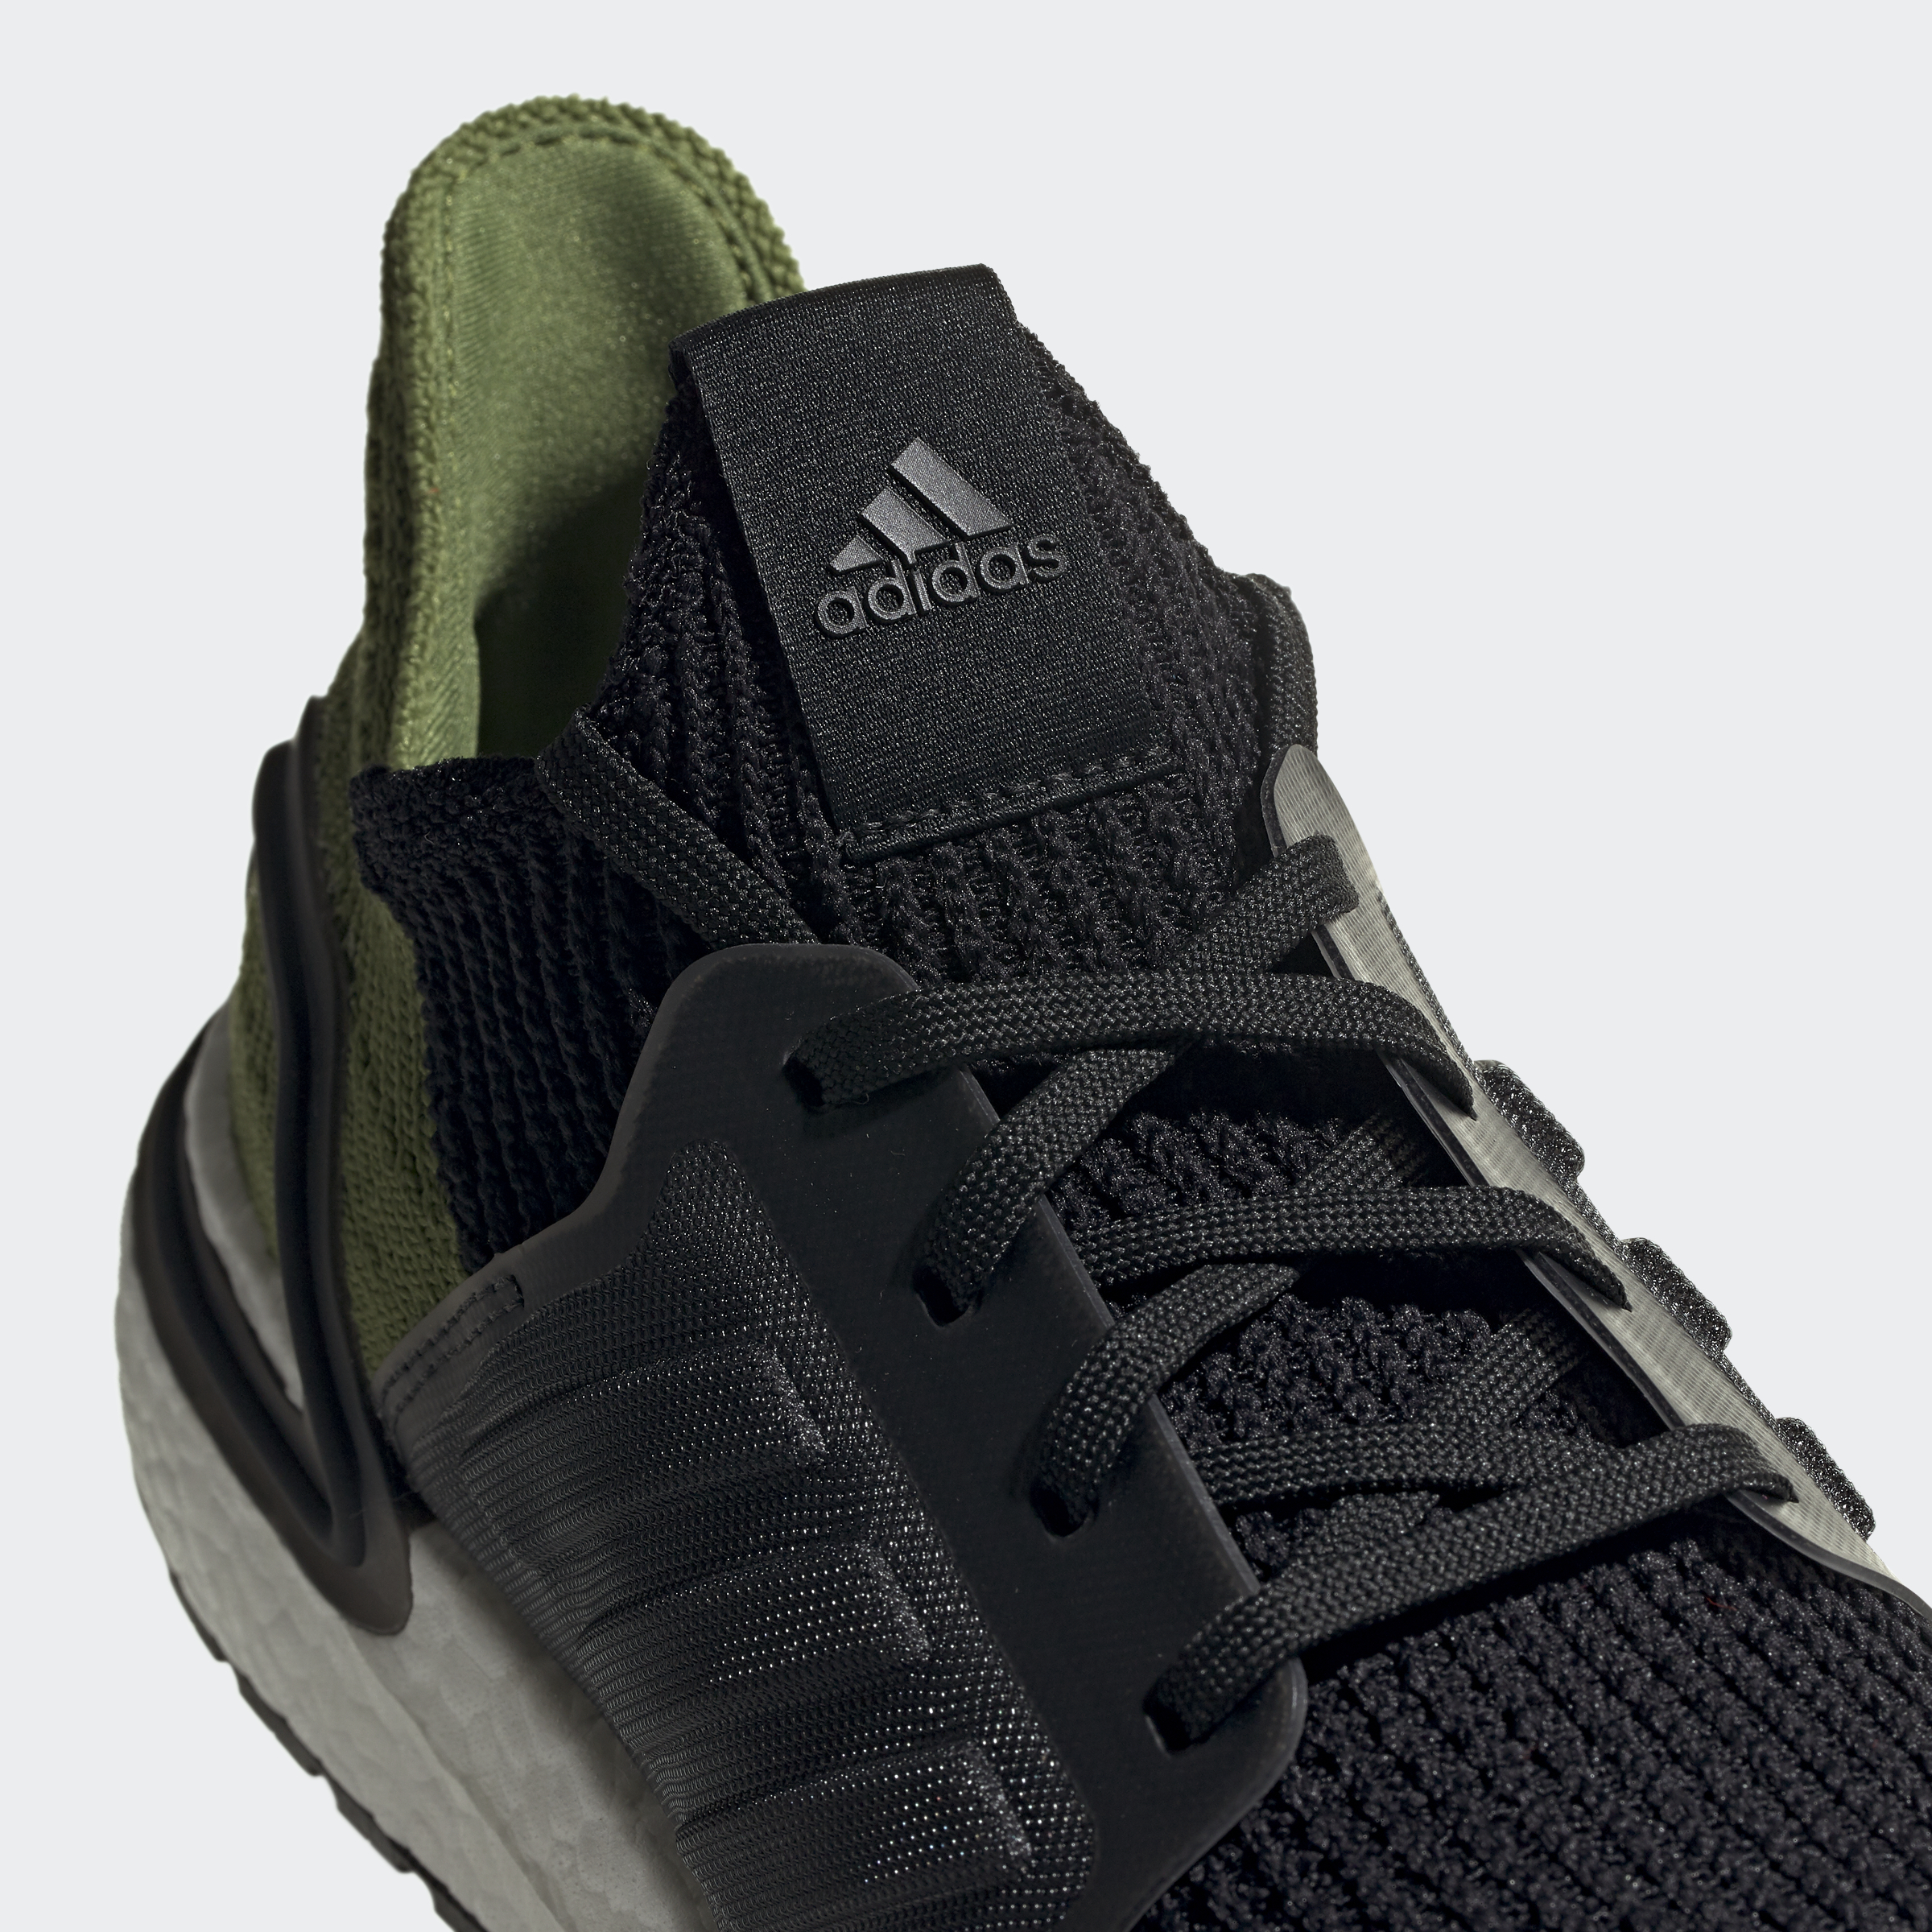 adidas-Ultraboost-19-Shoes-Athletic-amp-Sneakers thumbnail 105